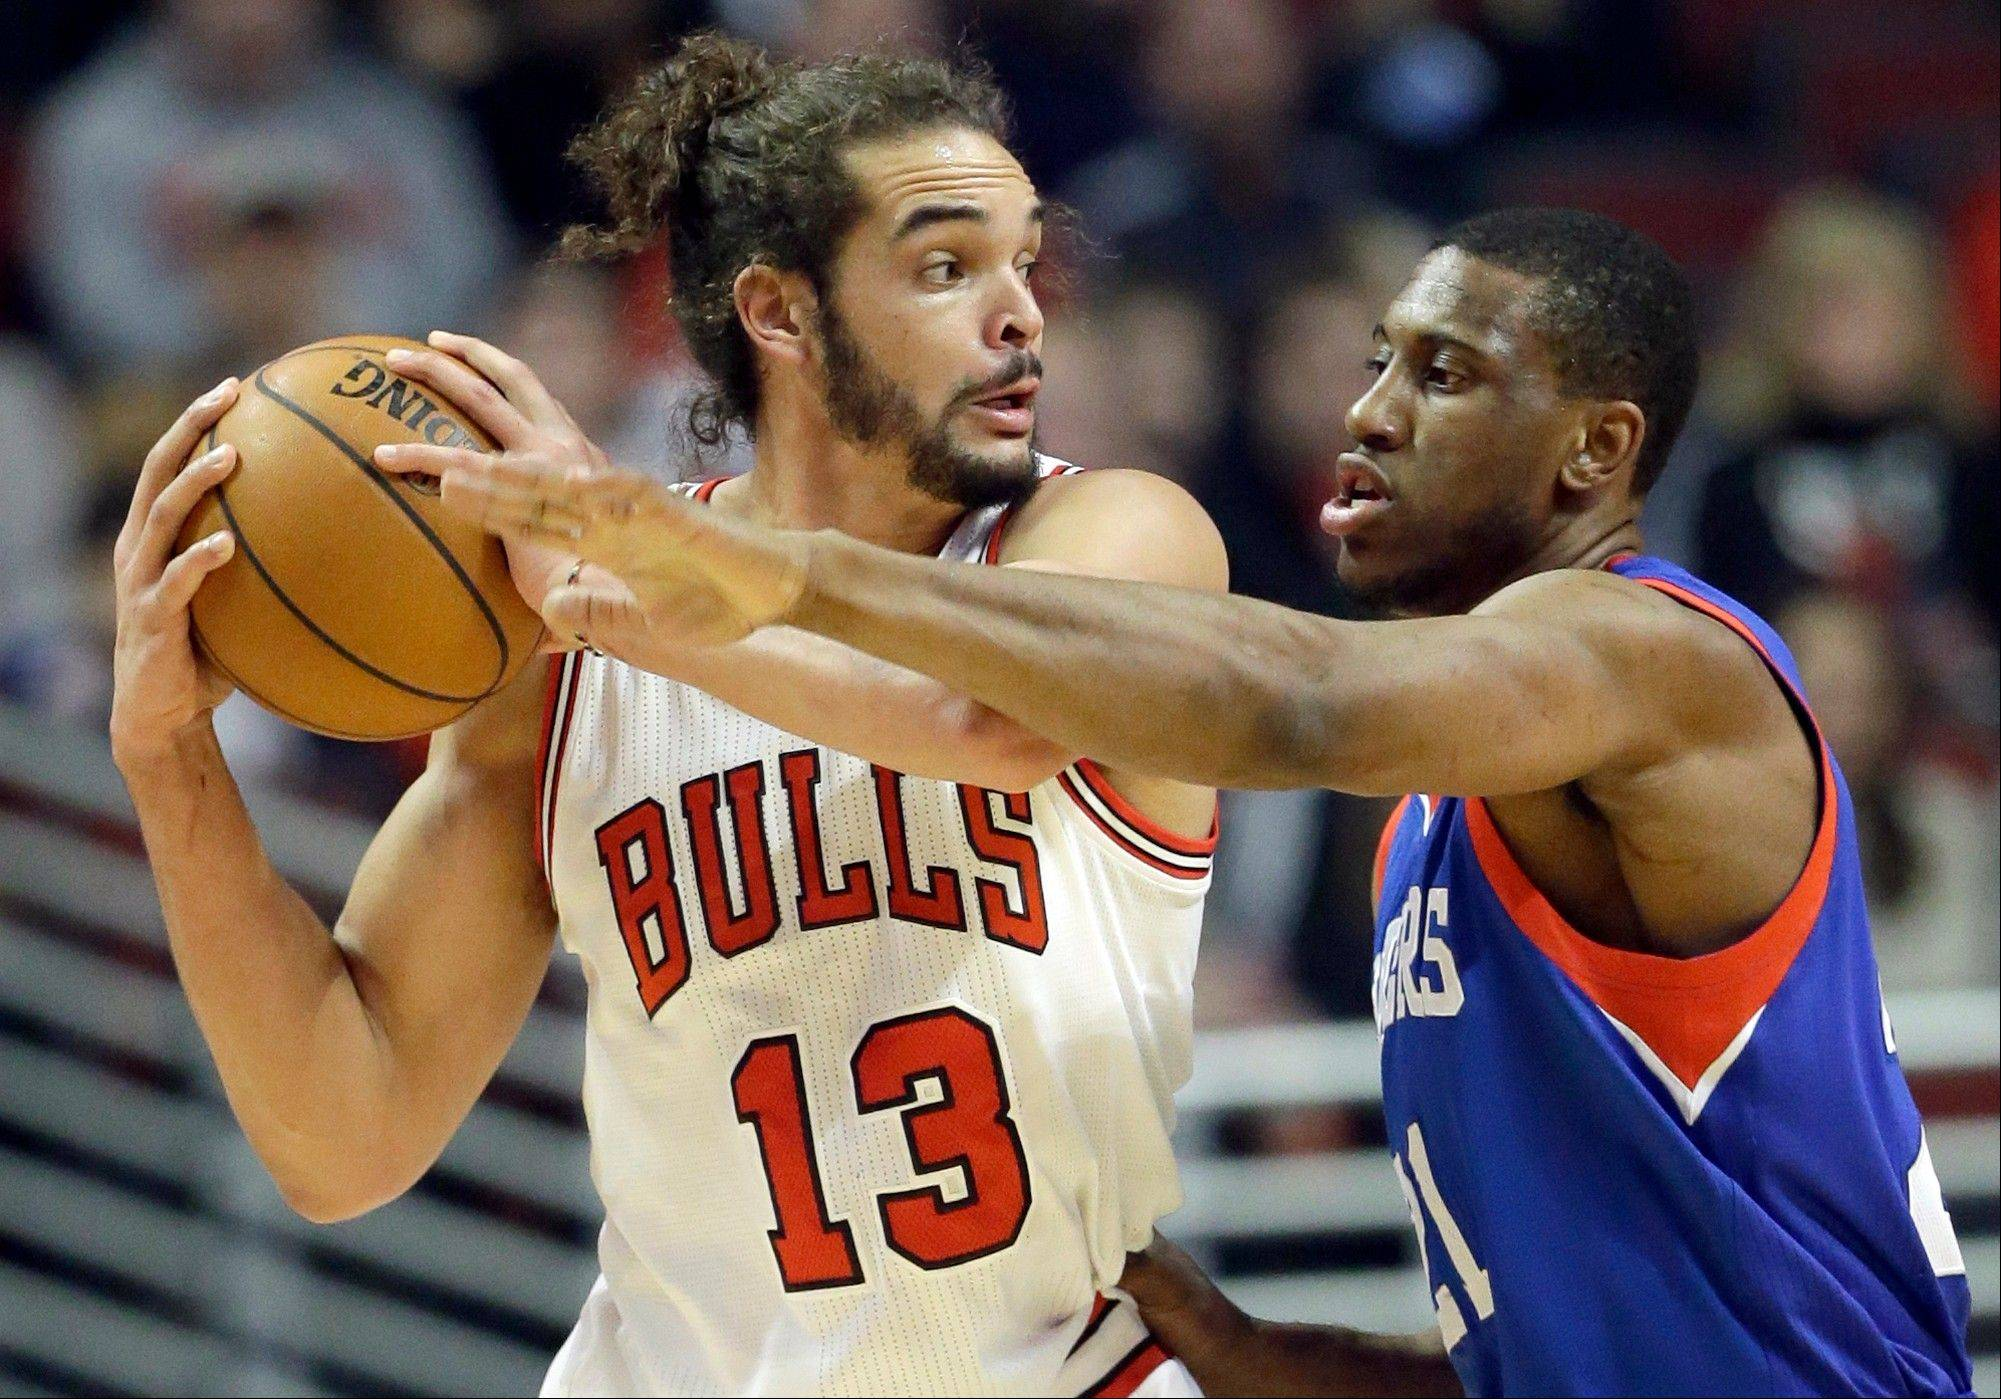 Associated PressChicago Bulls center Joakim Noah (13) looks to a pass as Philadelphia 76ers forward Thaddeus Young, right, guards during Saturday night's game at the United Center.